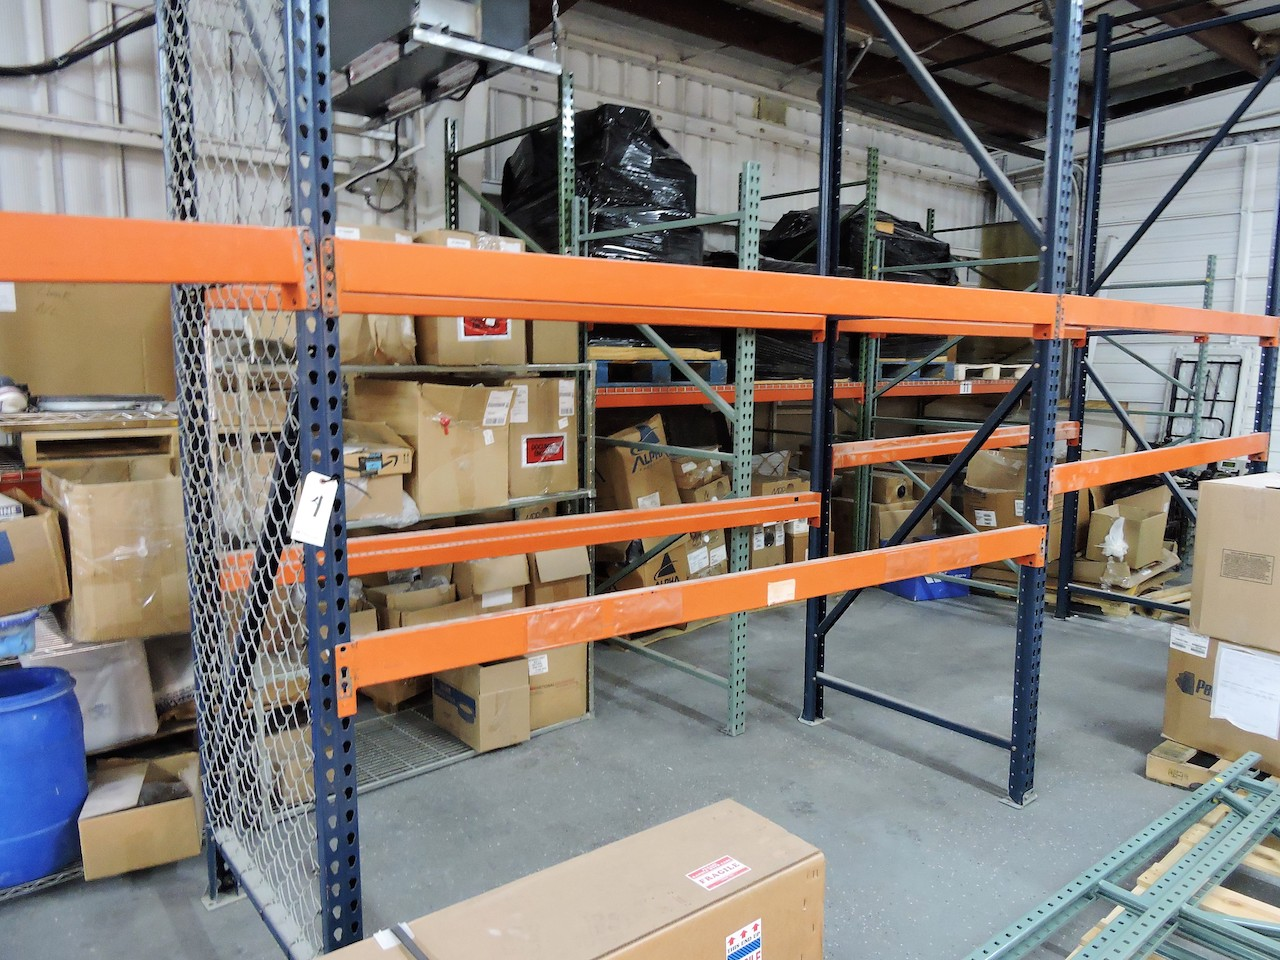 """Lot 4 - PALLET RACKING 4 UPRIGHTS 10 BEAMS 42"""" WIDE X 96"""" LONG X 12 FT HIGH 5000 LB LOAD CAPACITY"""